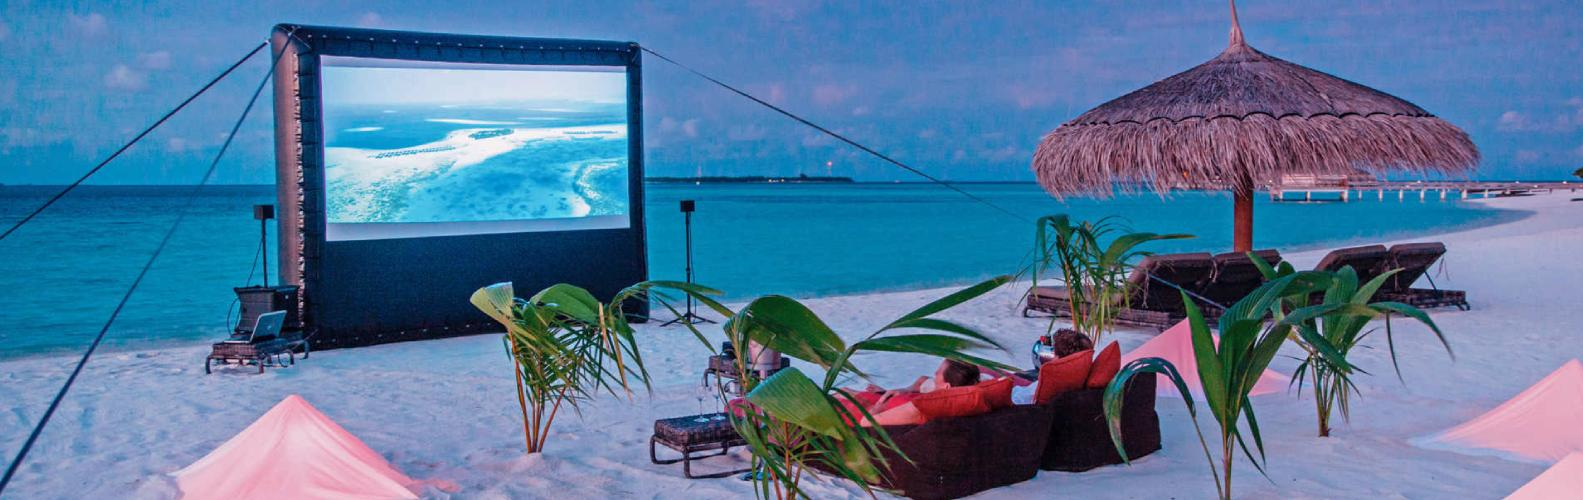 constance-moofushi-maldives-outdoor-cinema